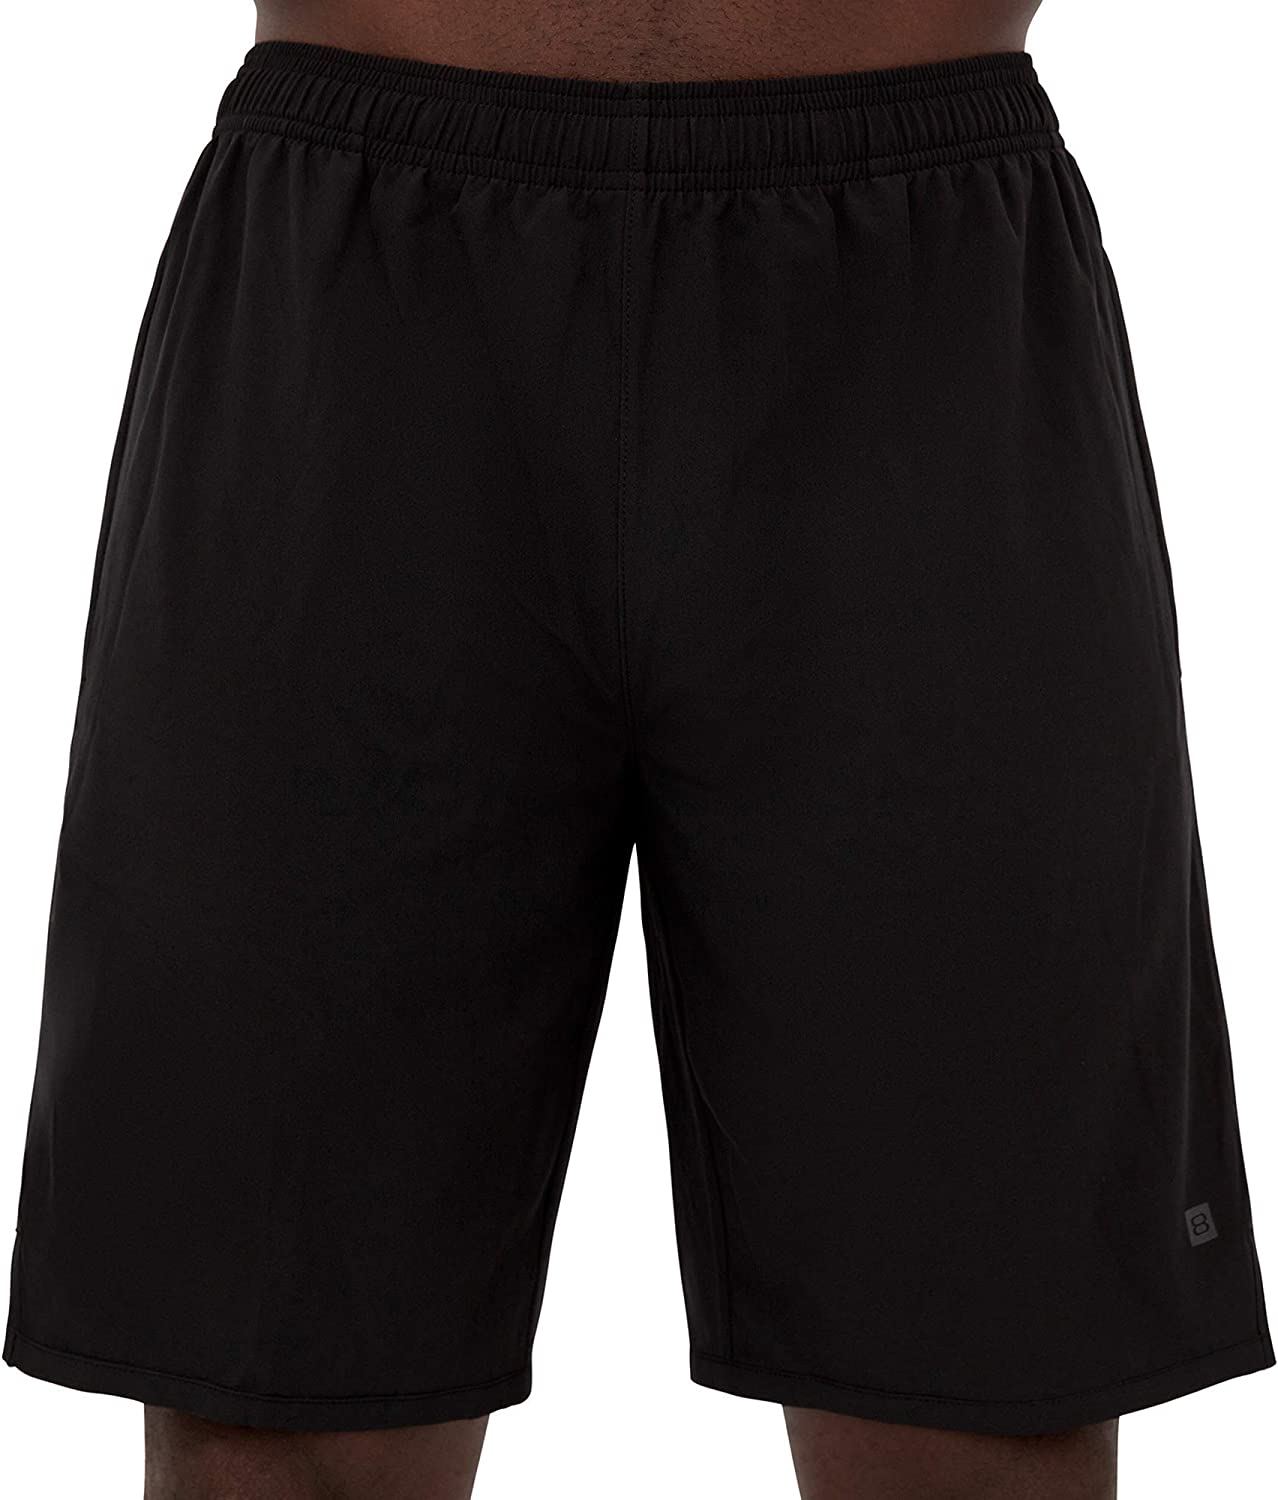 Layer 8 Mens Hybrid All Purpose Workout Woven Athletic Shorts 7 and 9 Inch Inseams